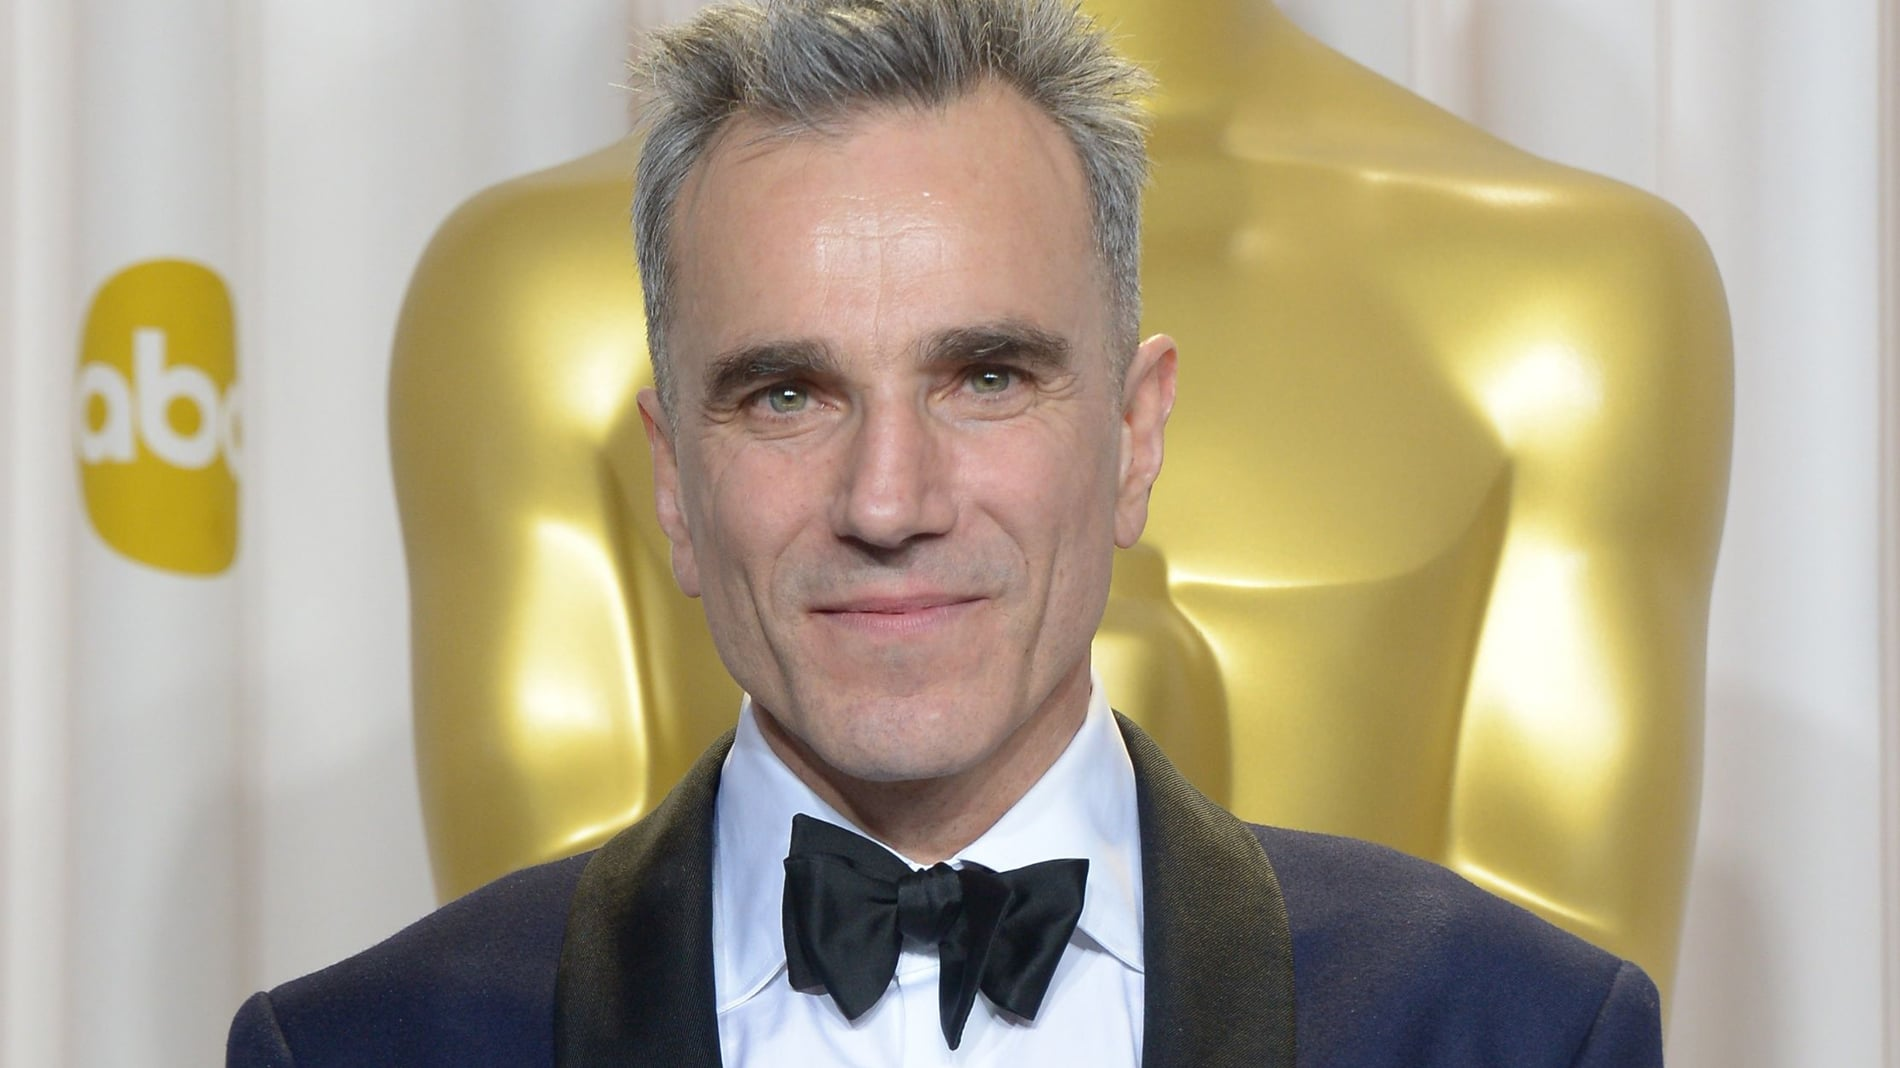 Daniel Day-Lewis: un actor especial, único e irrepetible